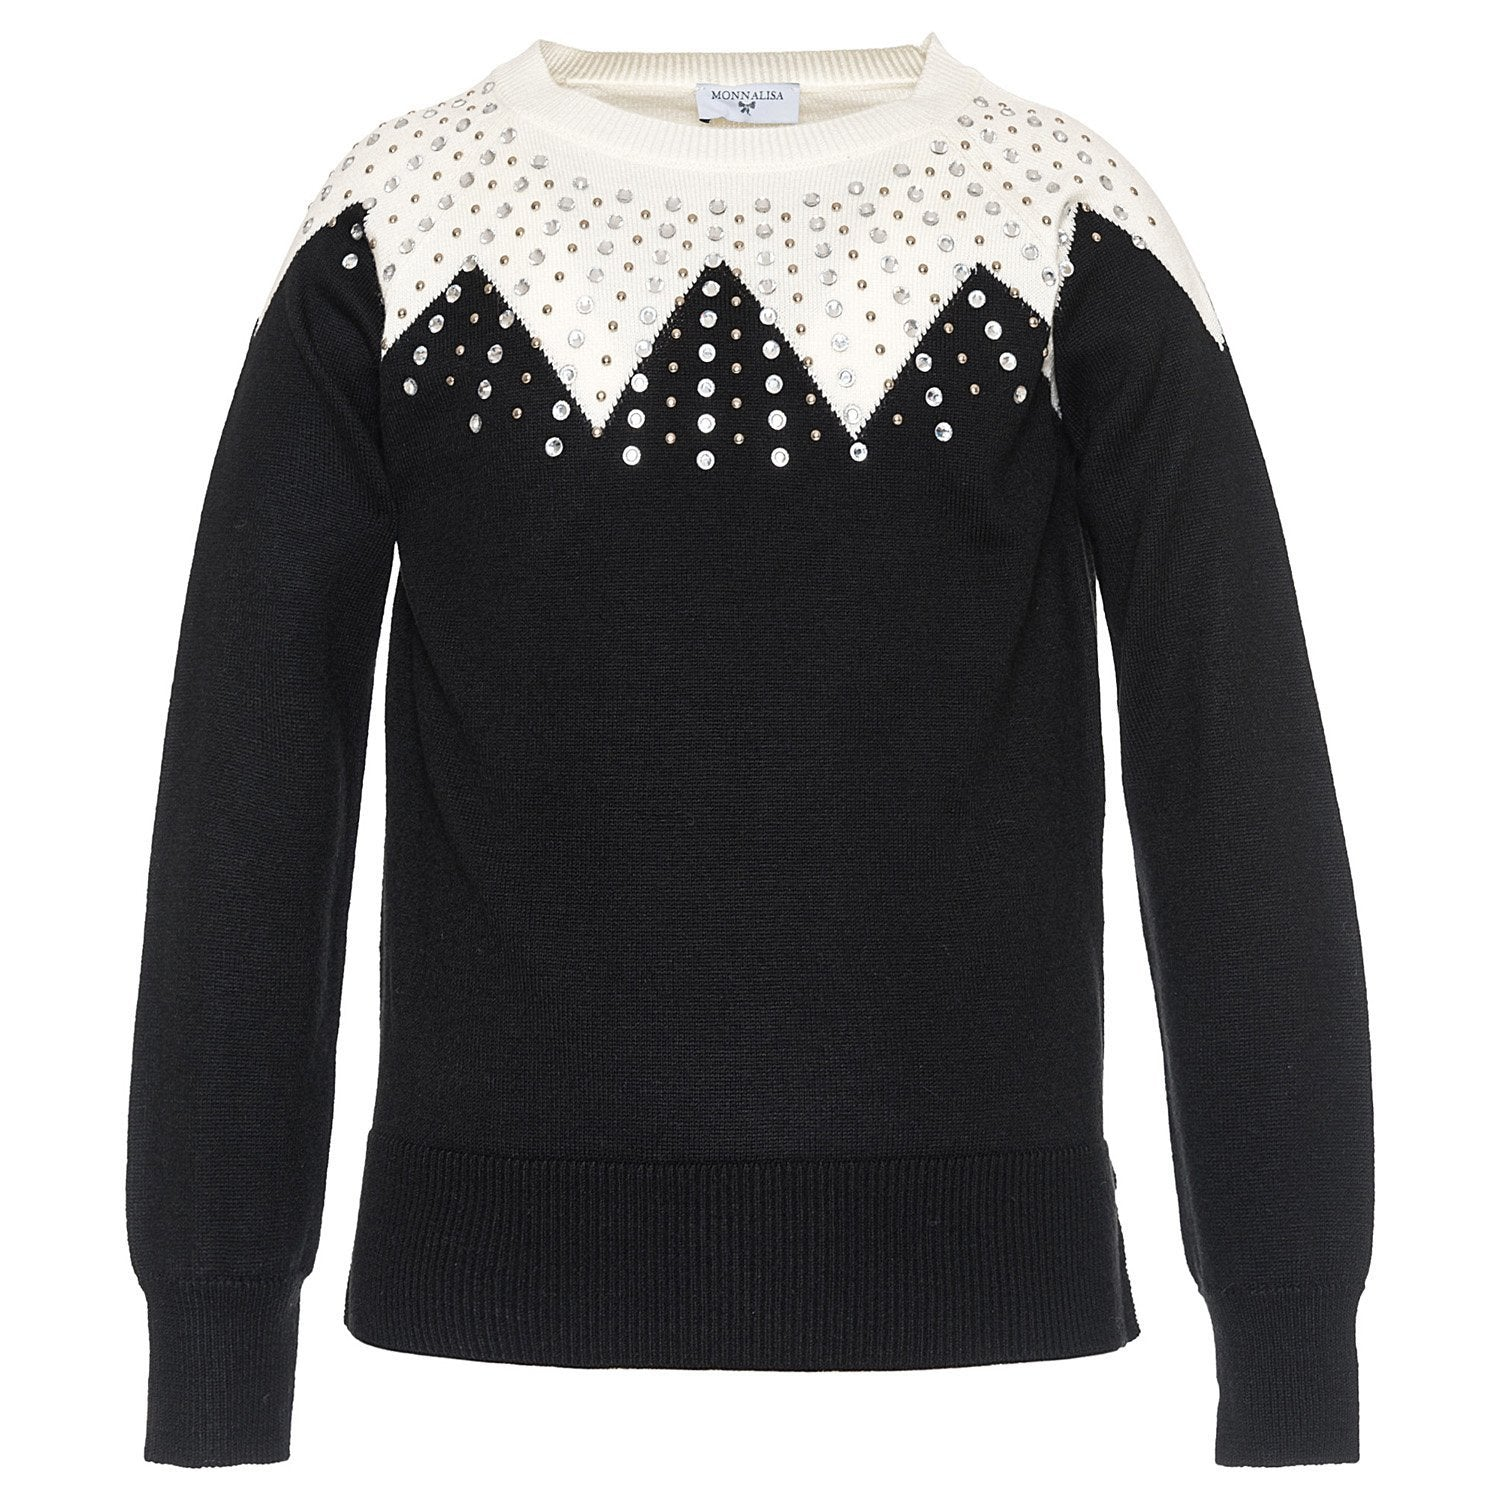 Monnalisa Girls Rhinestone Sweater